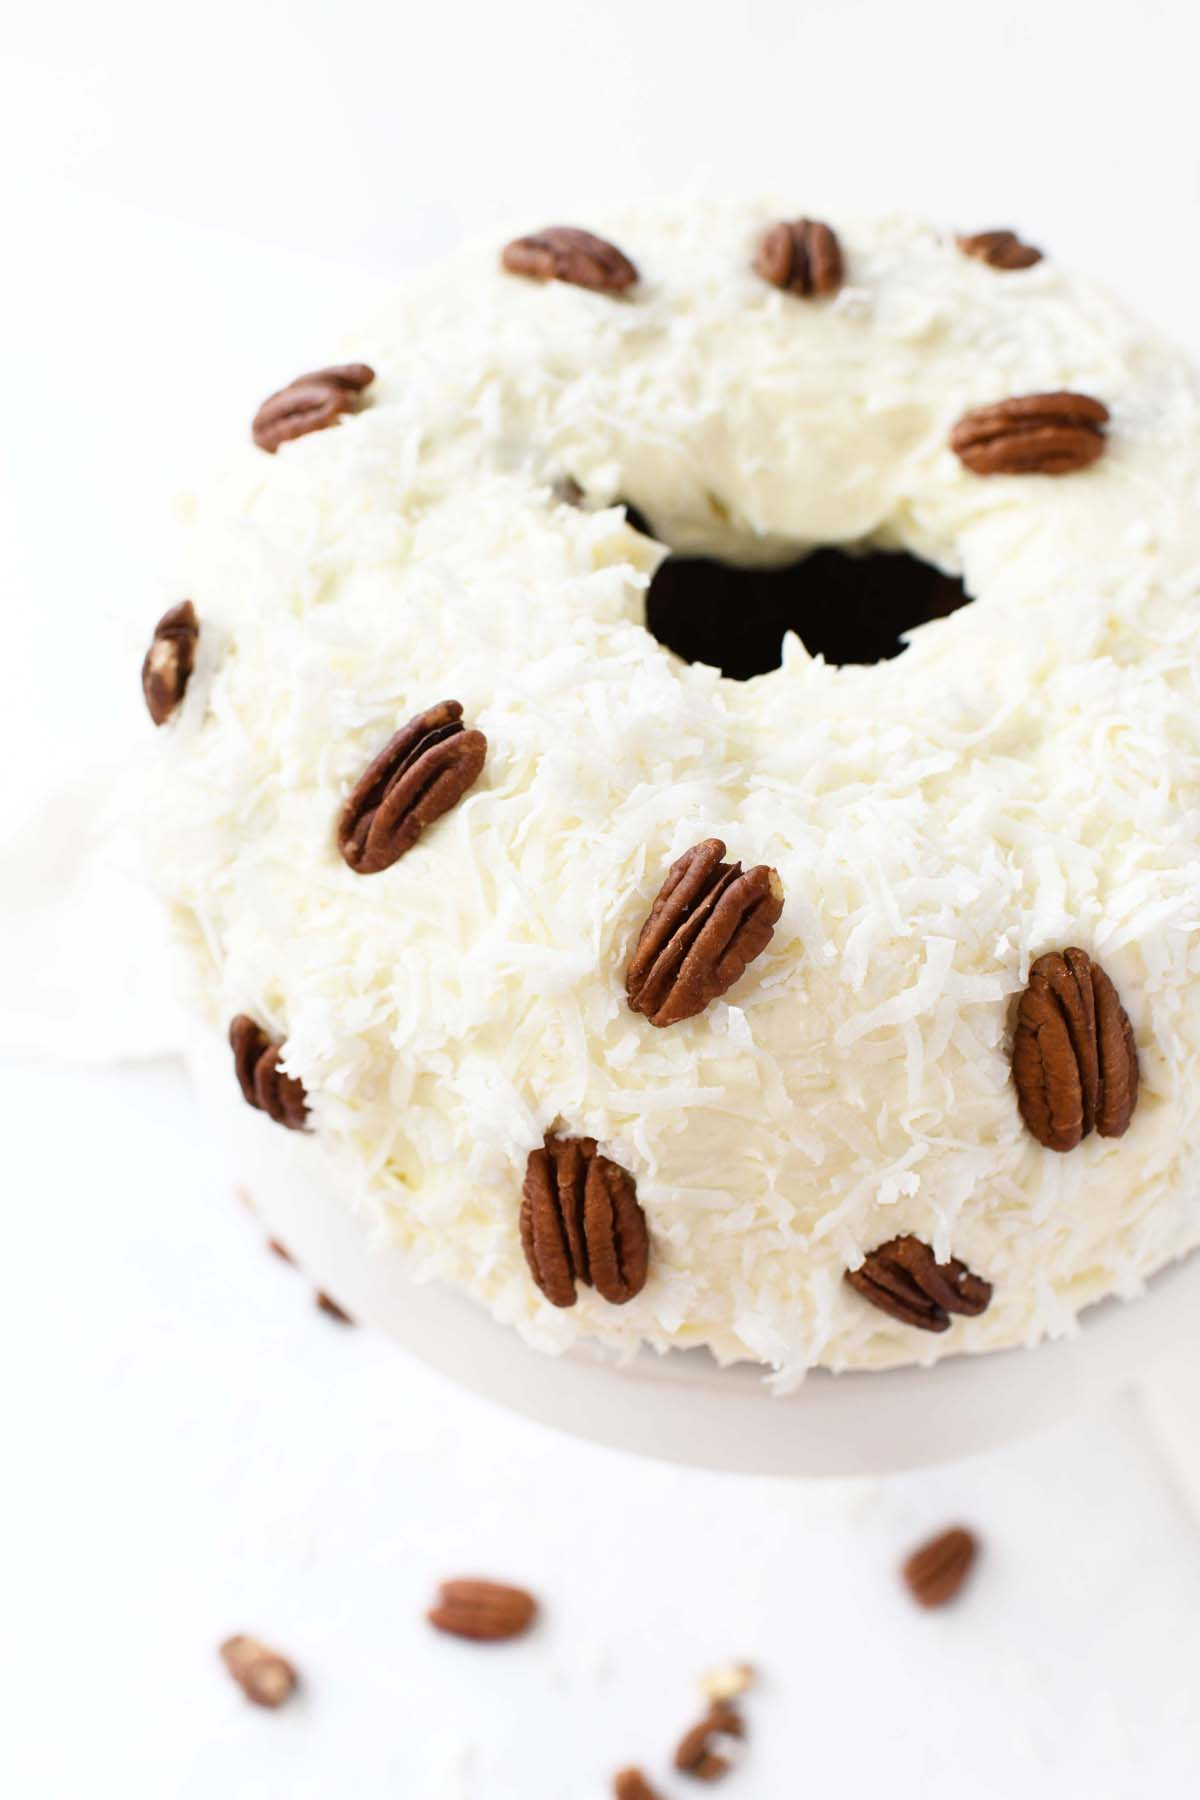 A fluffy Hummingbird Cake with coconut and pecans.